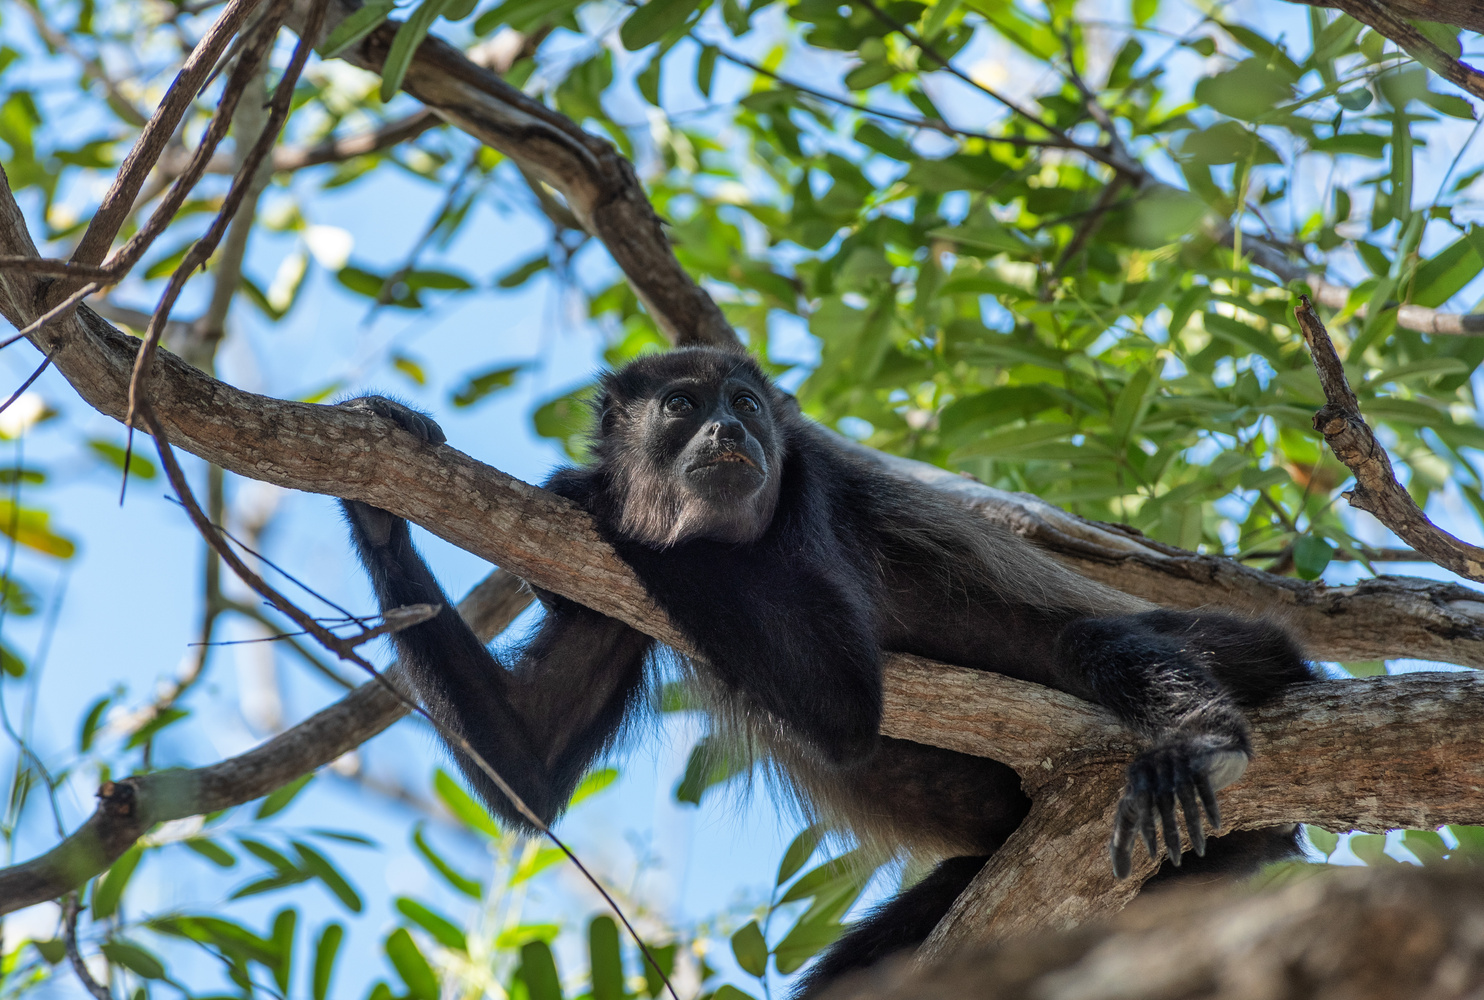 Howler Monkey in tree by John Nicholson